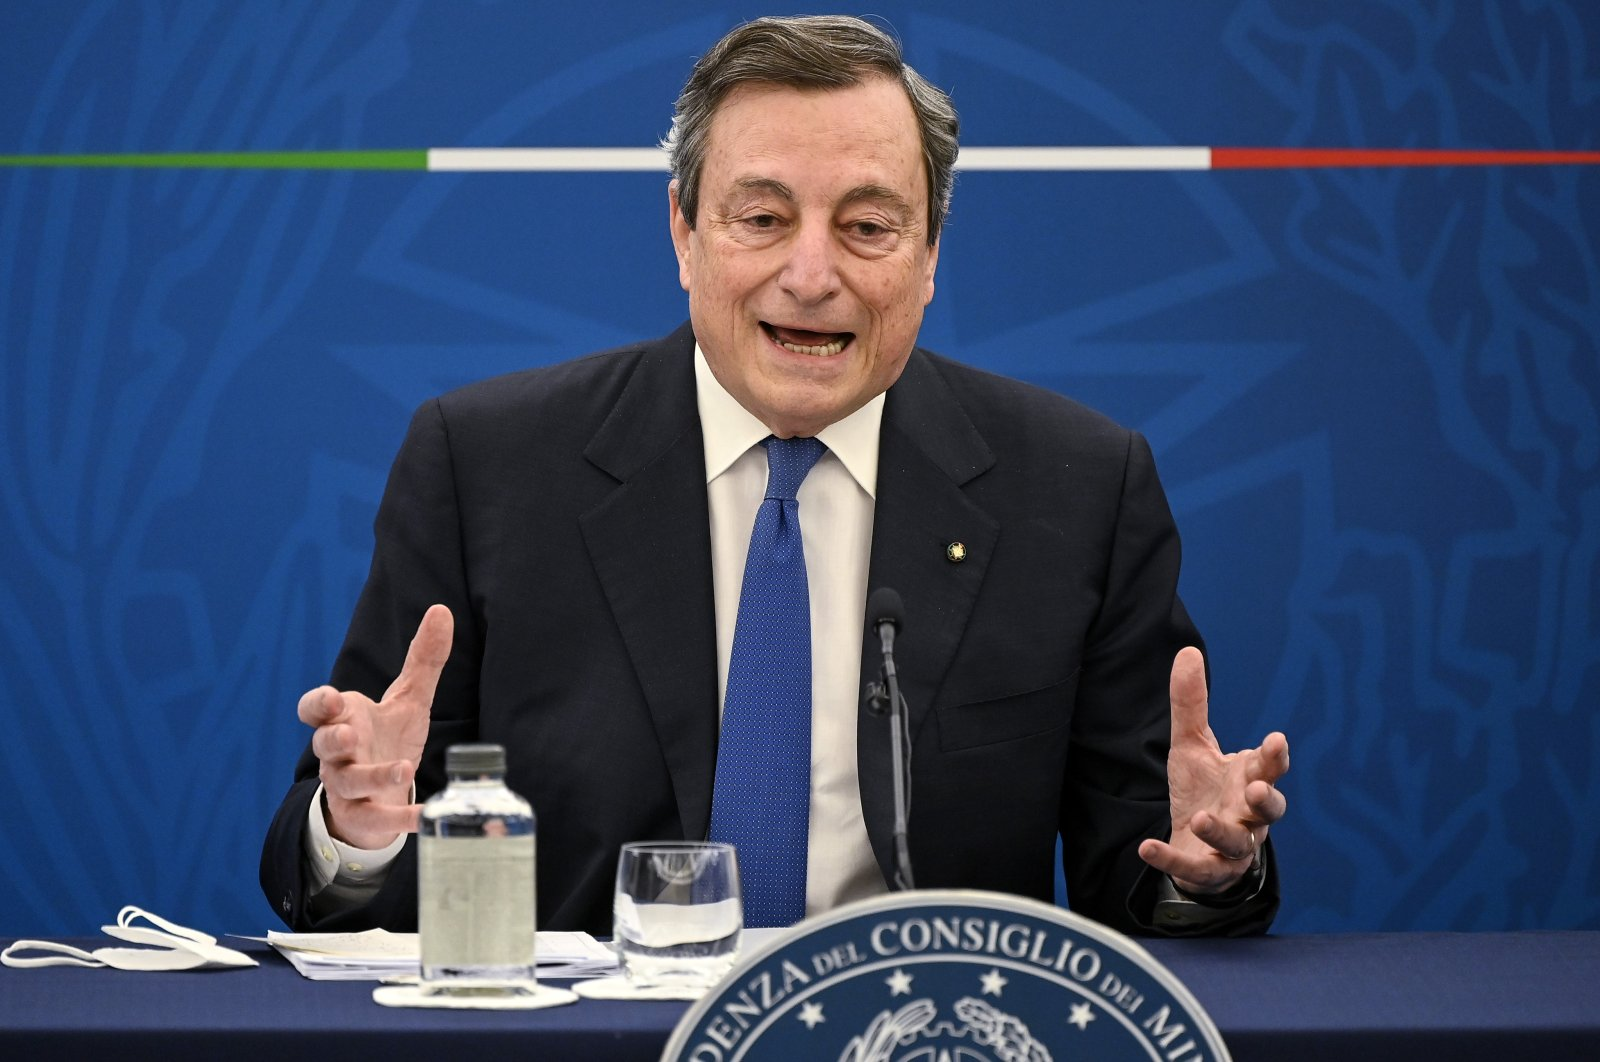 Italian Prime Minister Mario Draghi speaks during a press conference in Rome, Italy, April 8, 2021. (AP Photo)